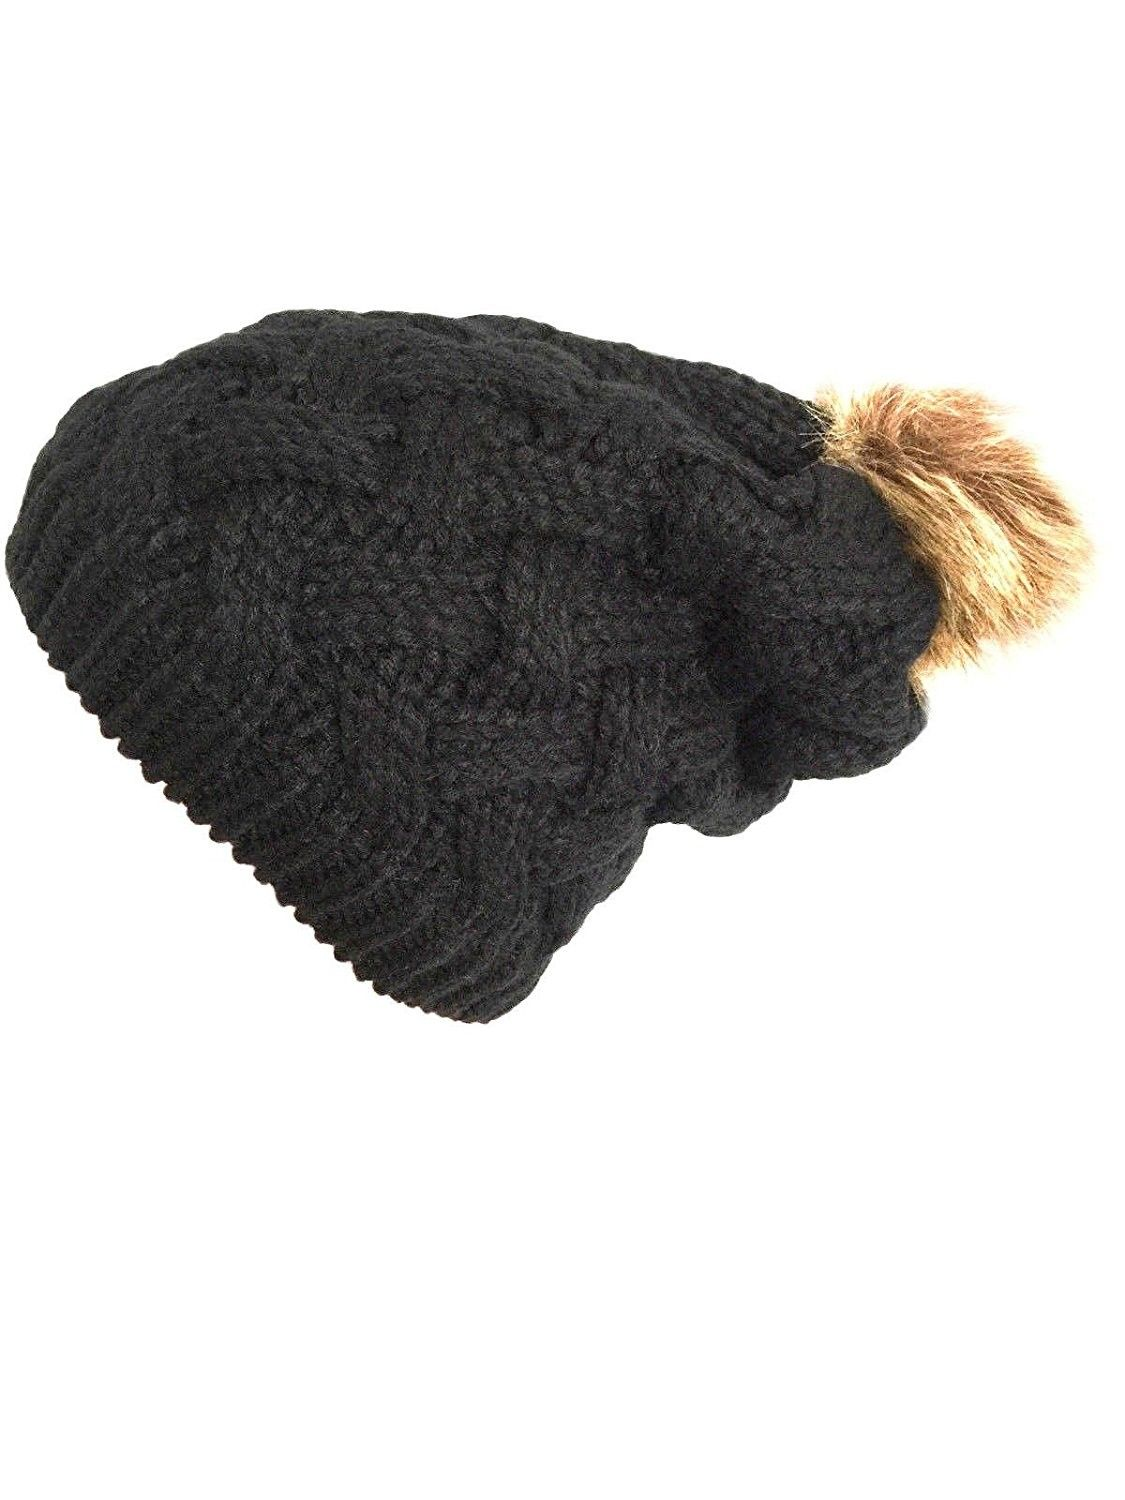 e5910ecf91c Women Chunky Cable Knit Oversized Slouchy Baggy Winter Thick Beanie Hat Pom  Pom - Black -